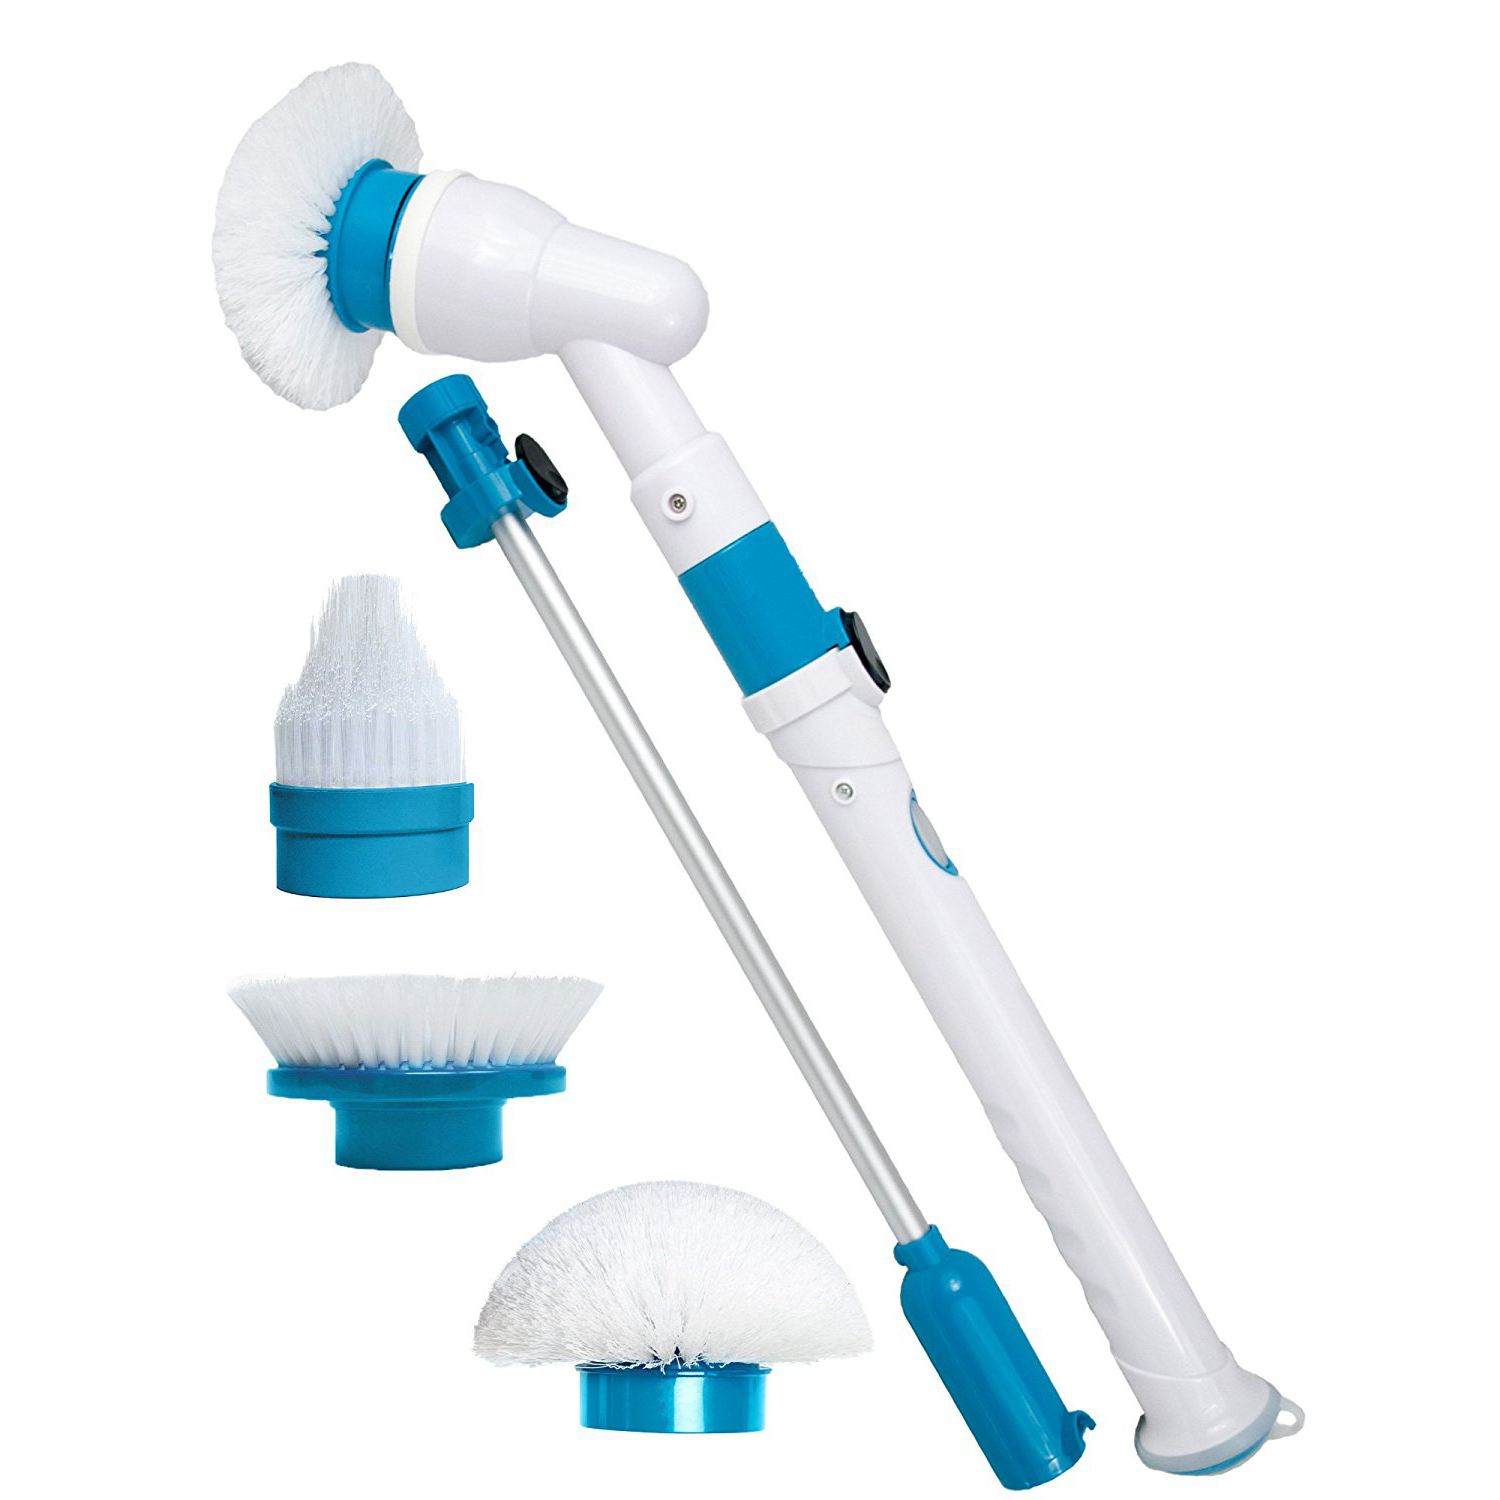 Spin Scrubber Electric Powerful Cleaning Brush with Extension Handle Tub and Tile Scrubber for Bathroom Floor Tiles Wall